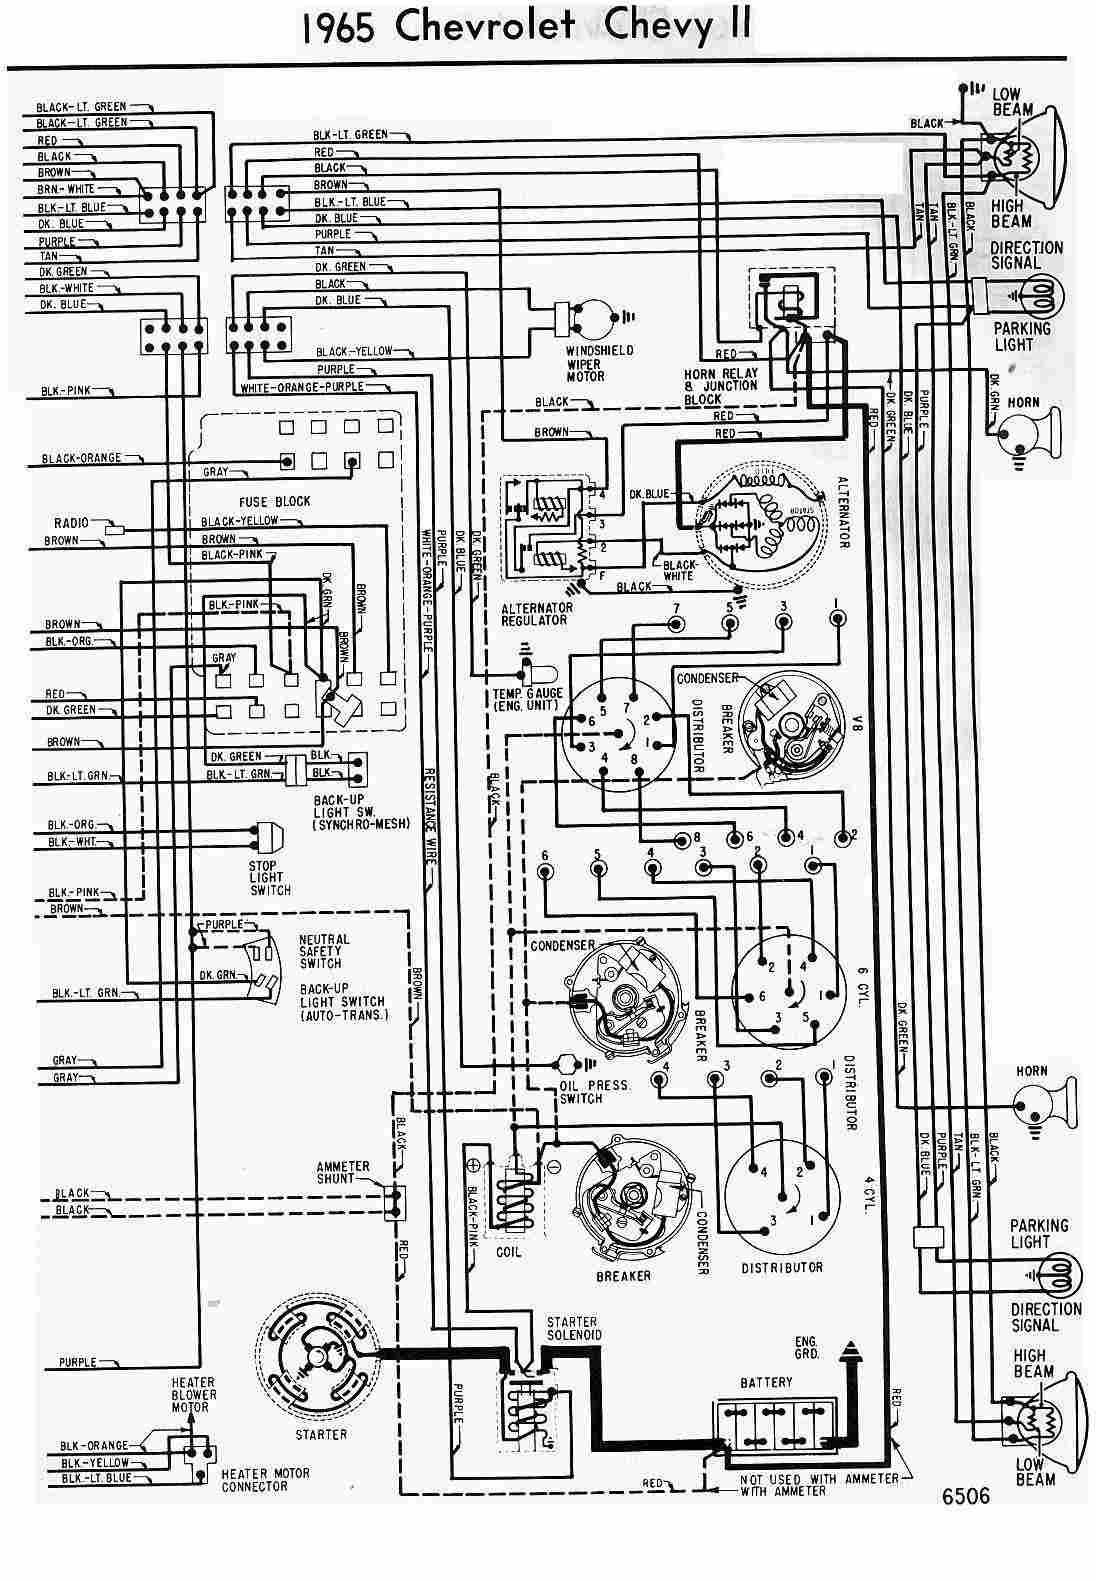 Chevrolet Car Manuals Wiring Diagrams Pdf Fault Codes Of 1965 Corvette Part 1 Download